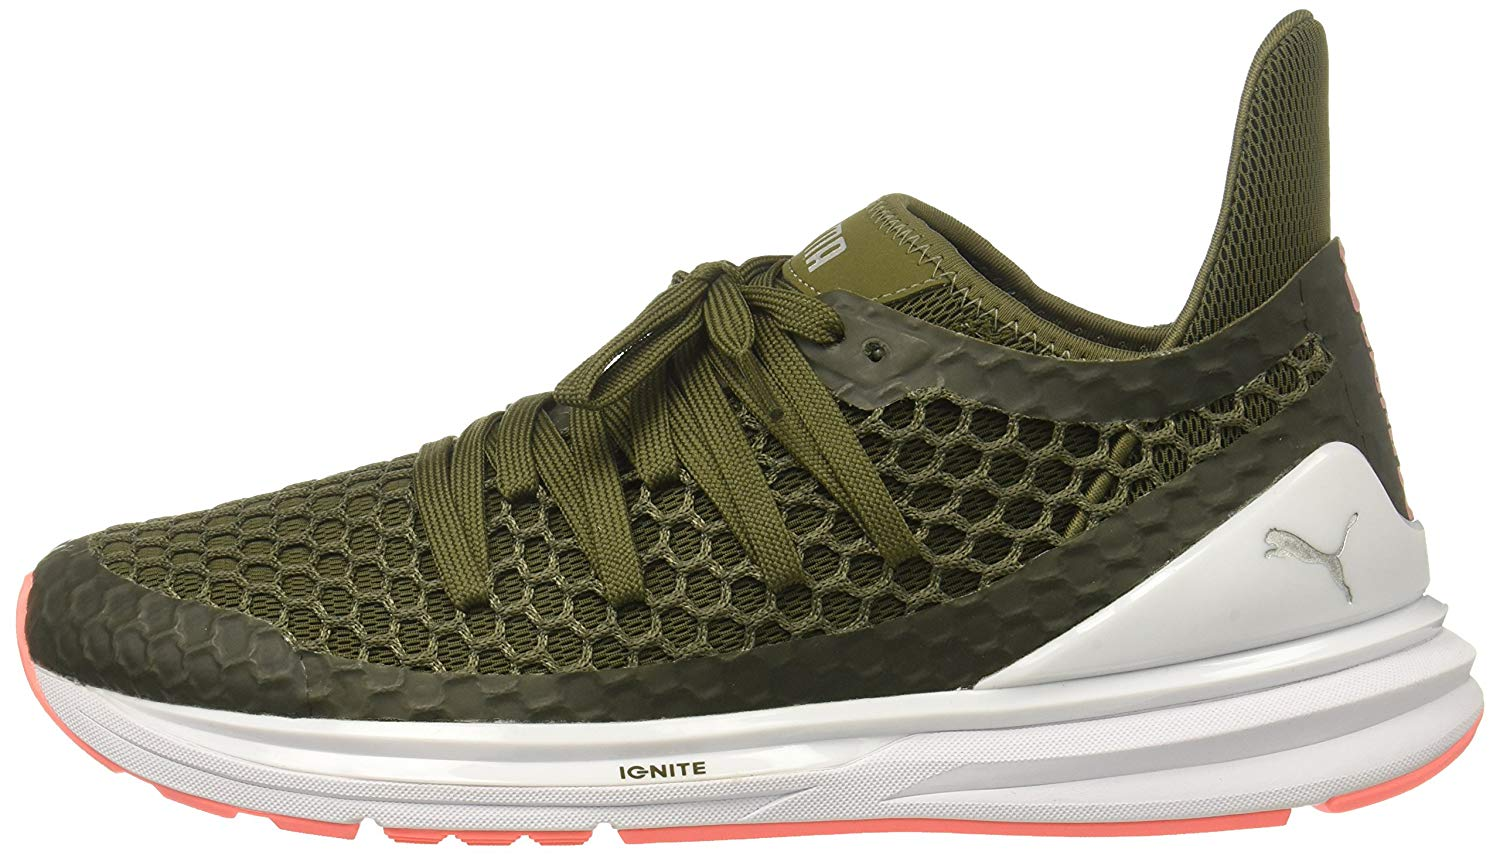 Details about PUMA Women's Ignite Limitless Netfit Wn, Olive Night nrgy Peach, Size 11.0